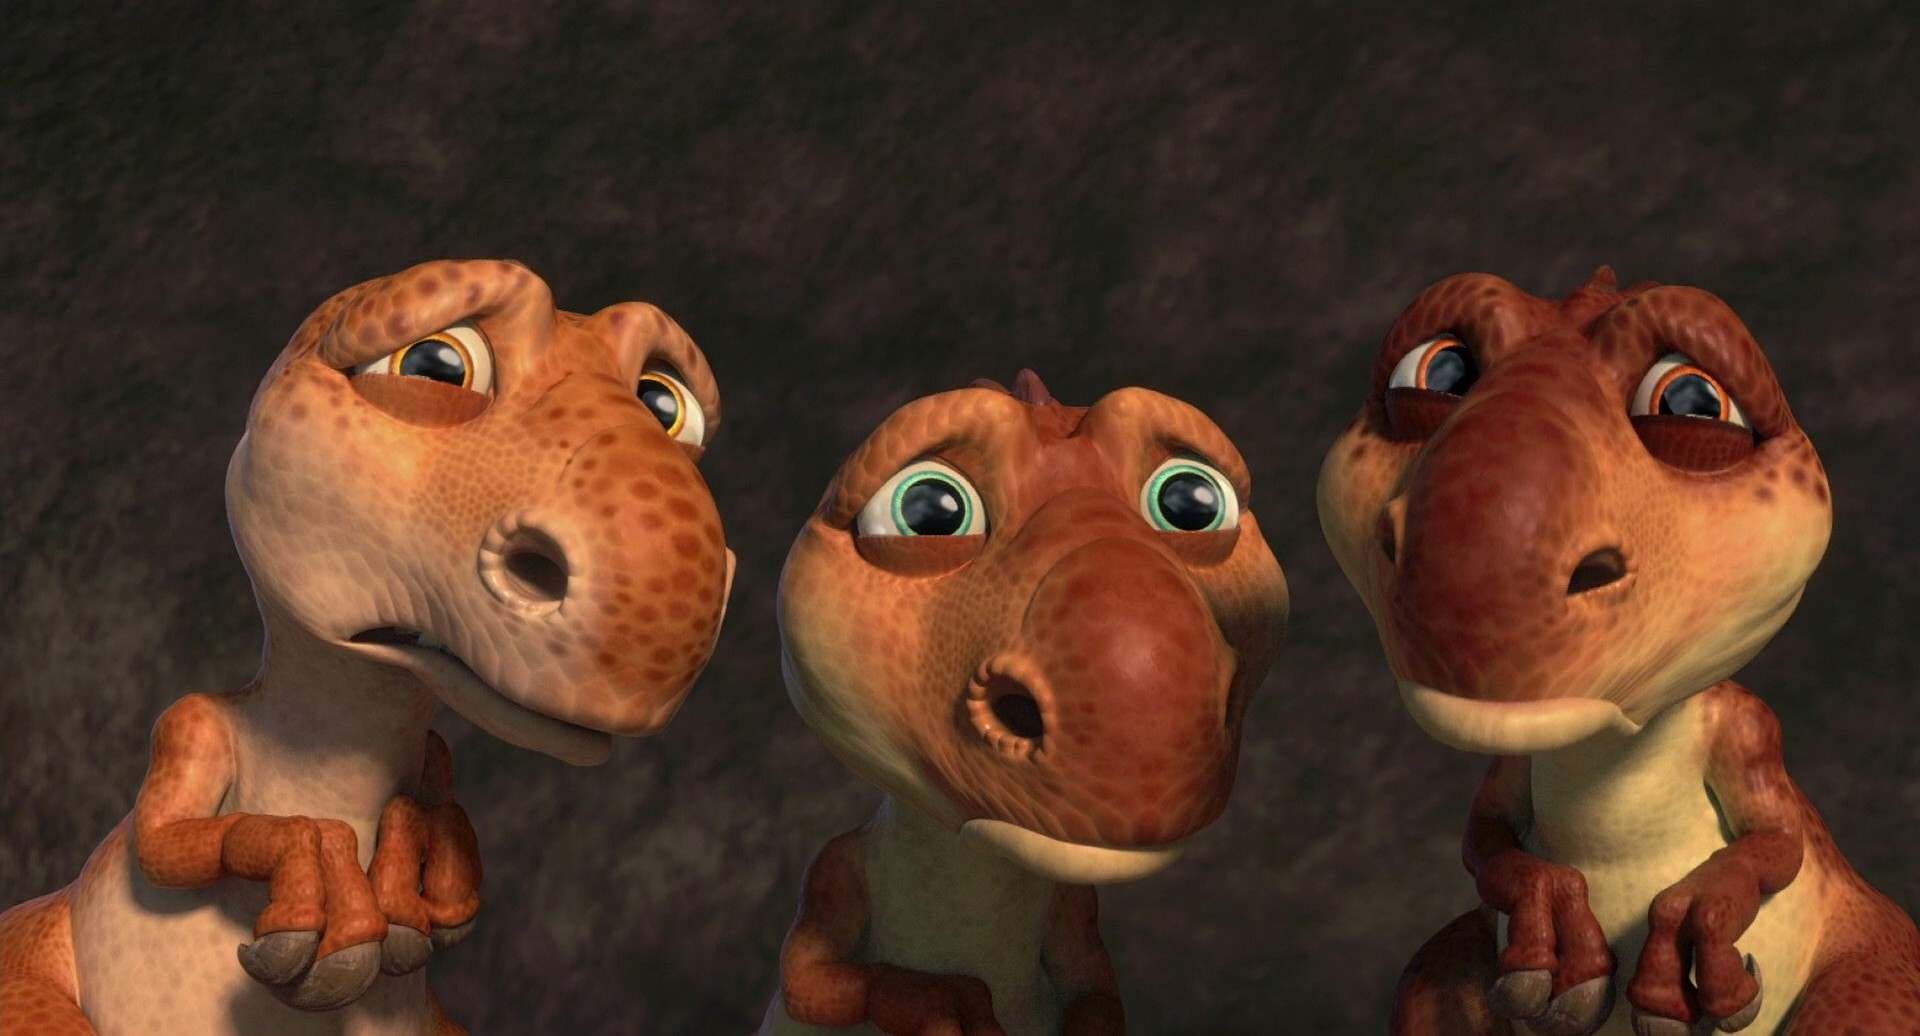 Baby Dinos from Ice Age 3 Desktop Wallpaper |Ice Age 3 Baby Dinosaurs